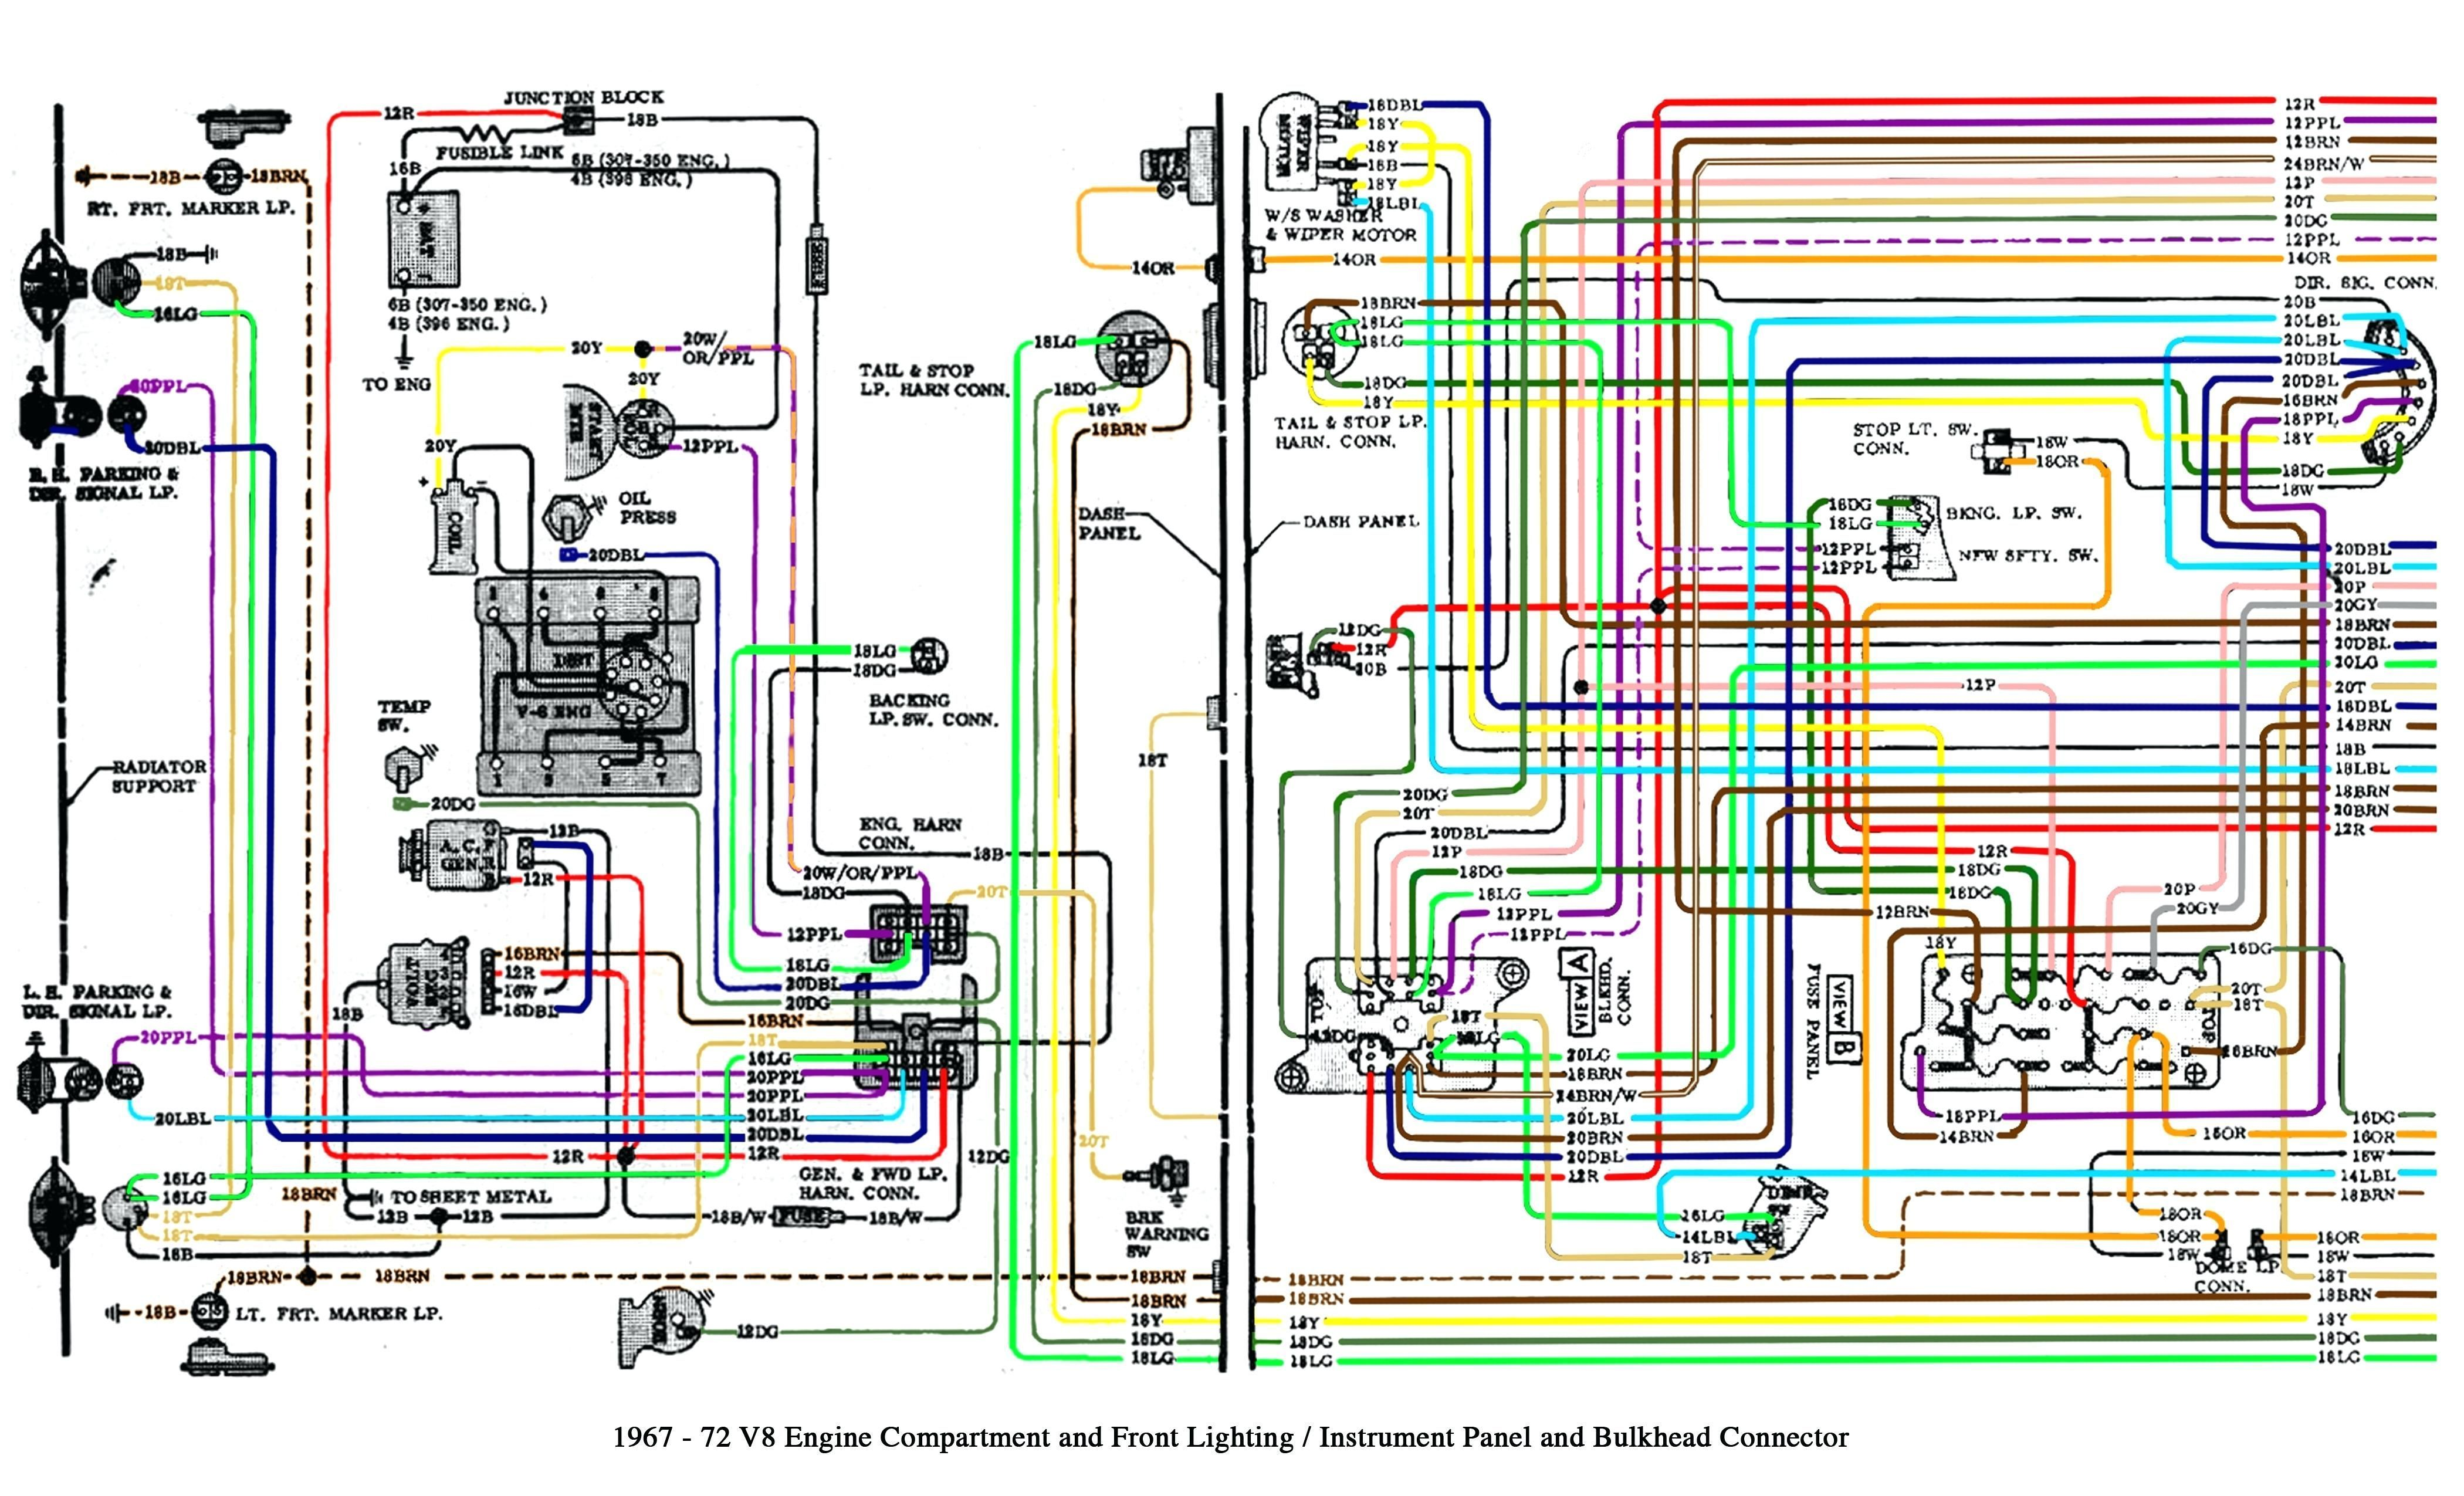 Collection Of Solutions 2000 Chevy S10 Stereo Wiring Diagram 2 Schematics Best Of In 2001 About 2000 S10 Radio Wiring Diagram Of 20 Chevy Truck Chevy Chevy C10